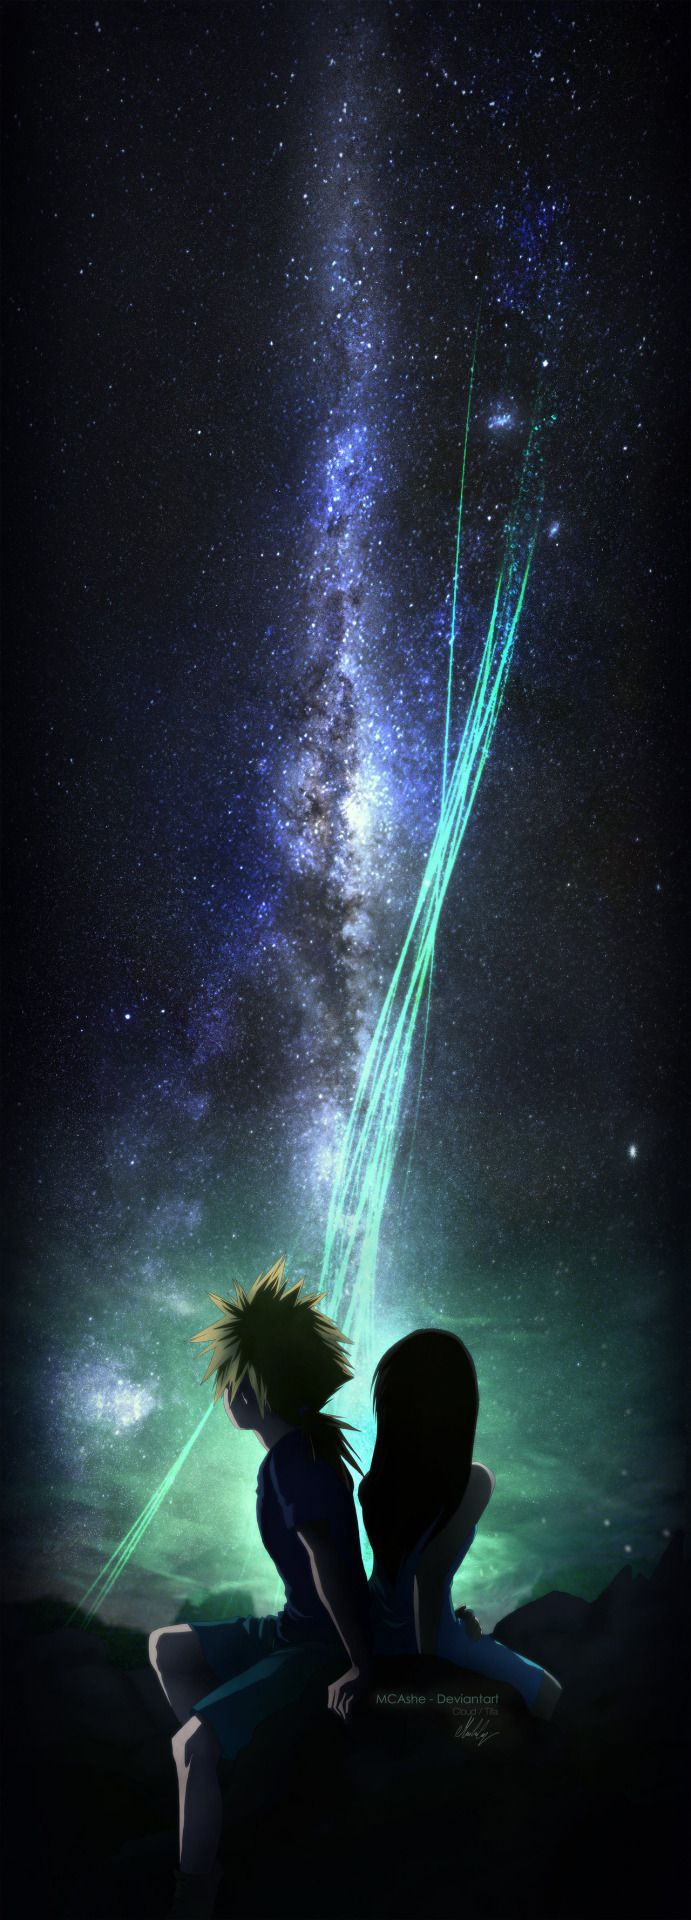 Final Fantasy VII - Childhood Promise Created by MC Ashe / Find this Artist on Website - Facebook